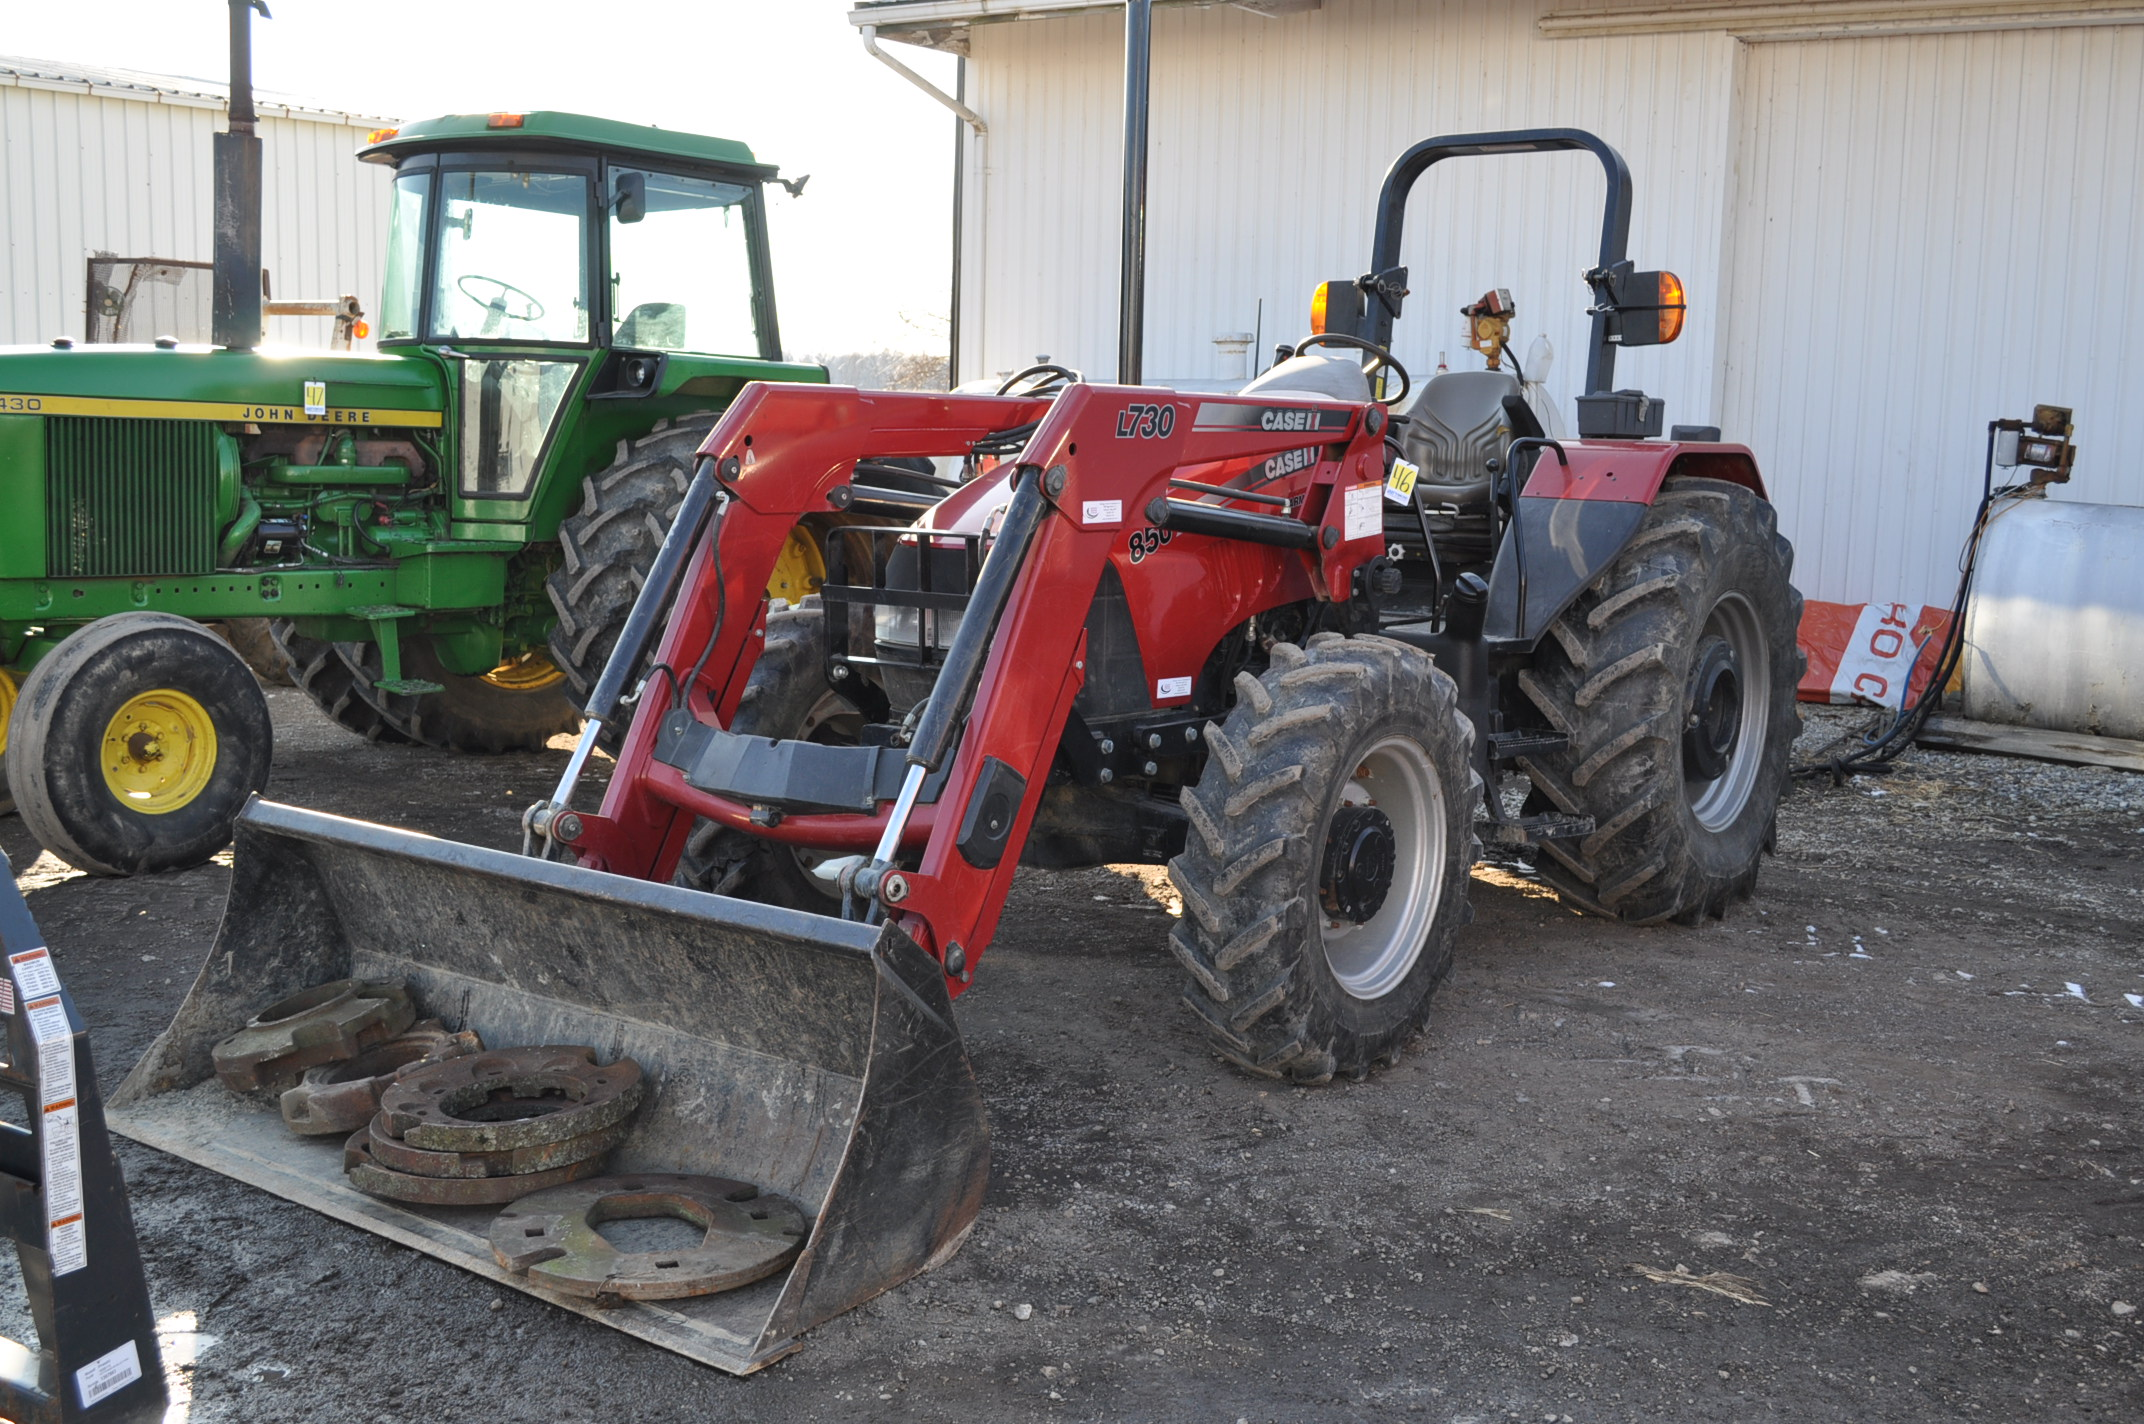 Case IH 85U Farmall MFWD tractor, 18.4R30 rear, 12.4R24 front, open station, mechanical shuttle - Image 2 of 16